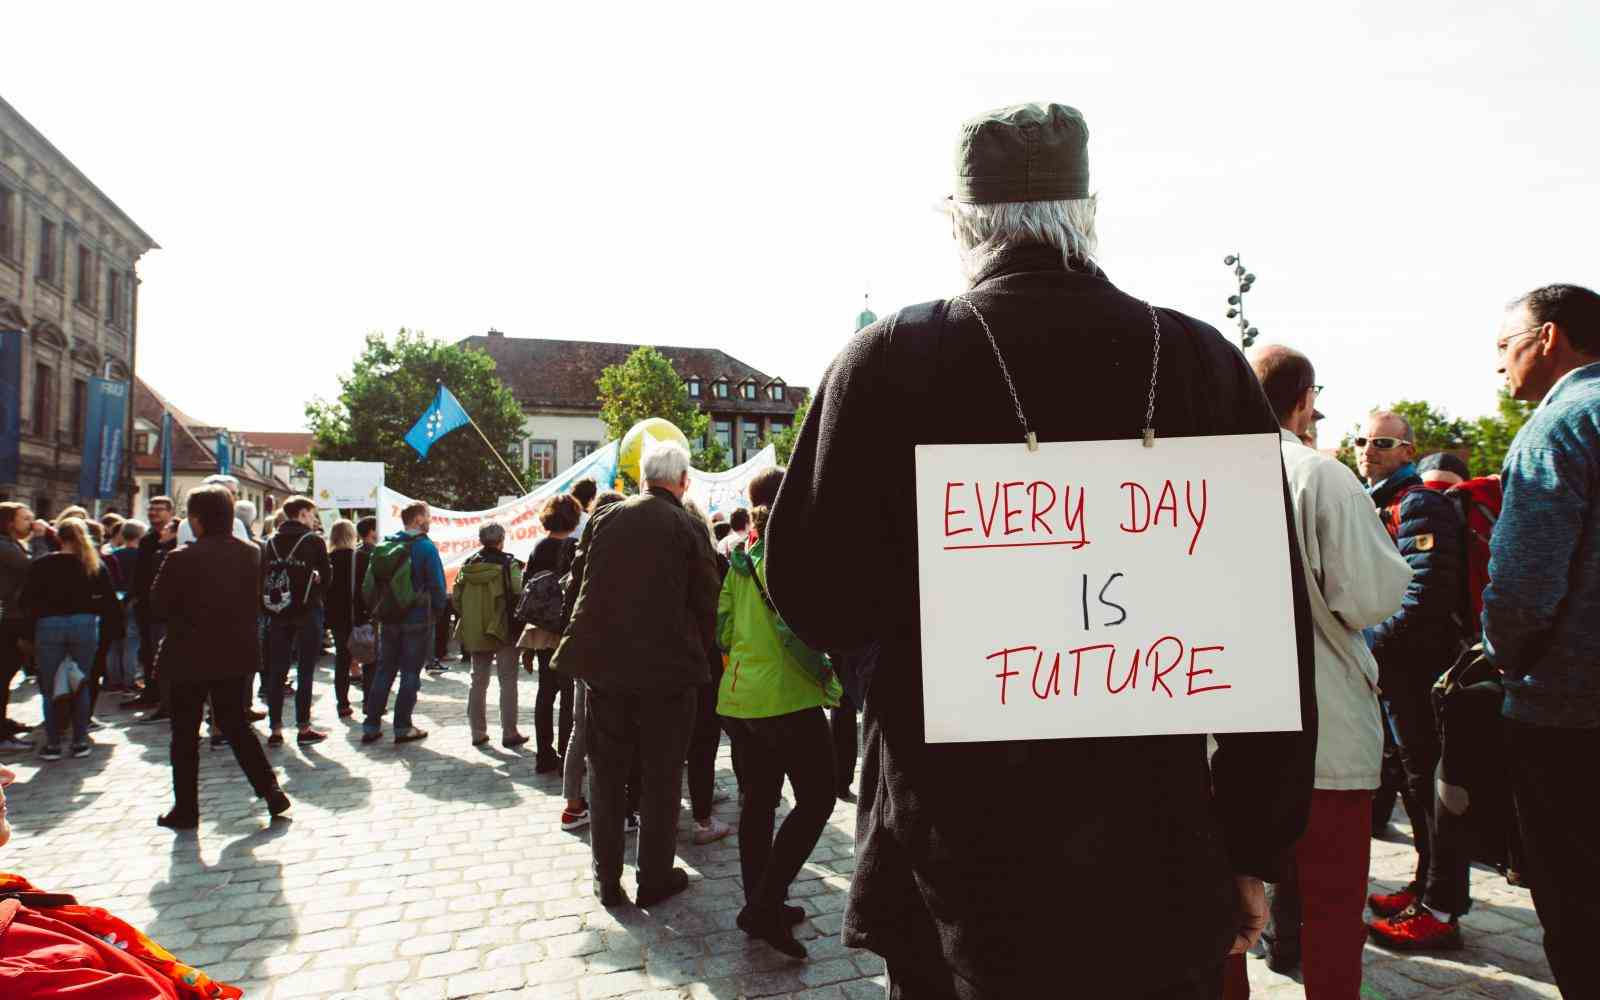 Everyday is our future, old man, banner, manifest